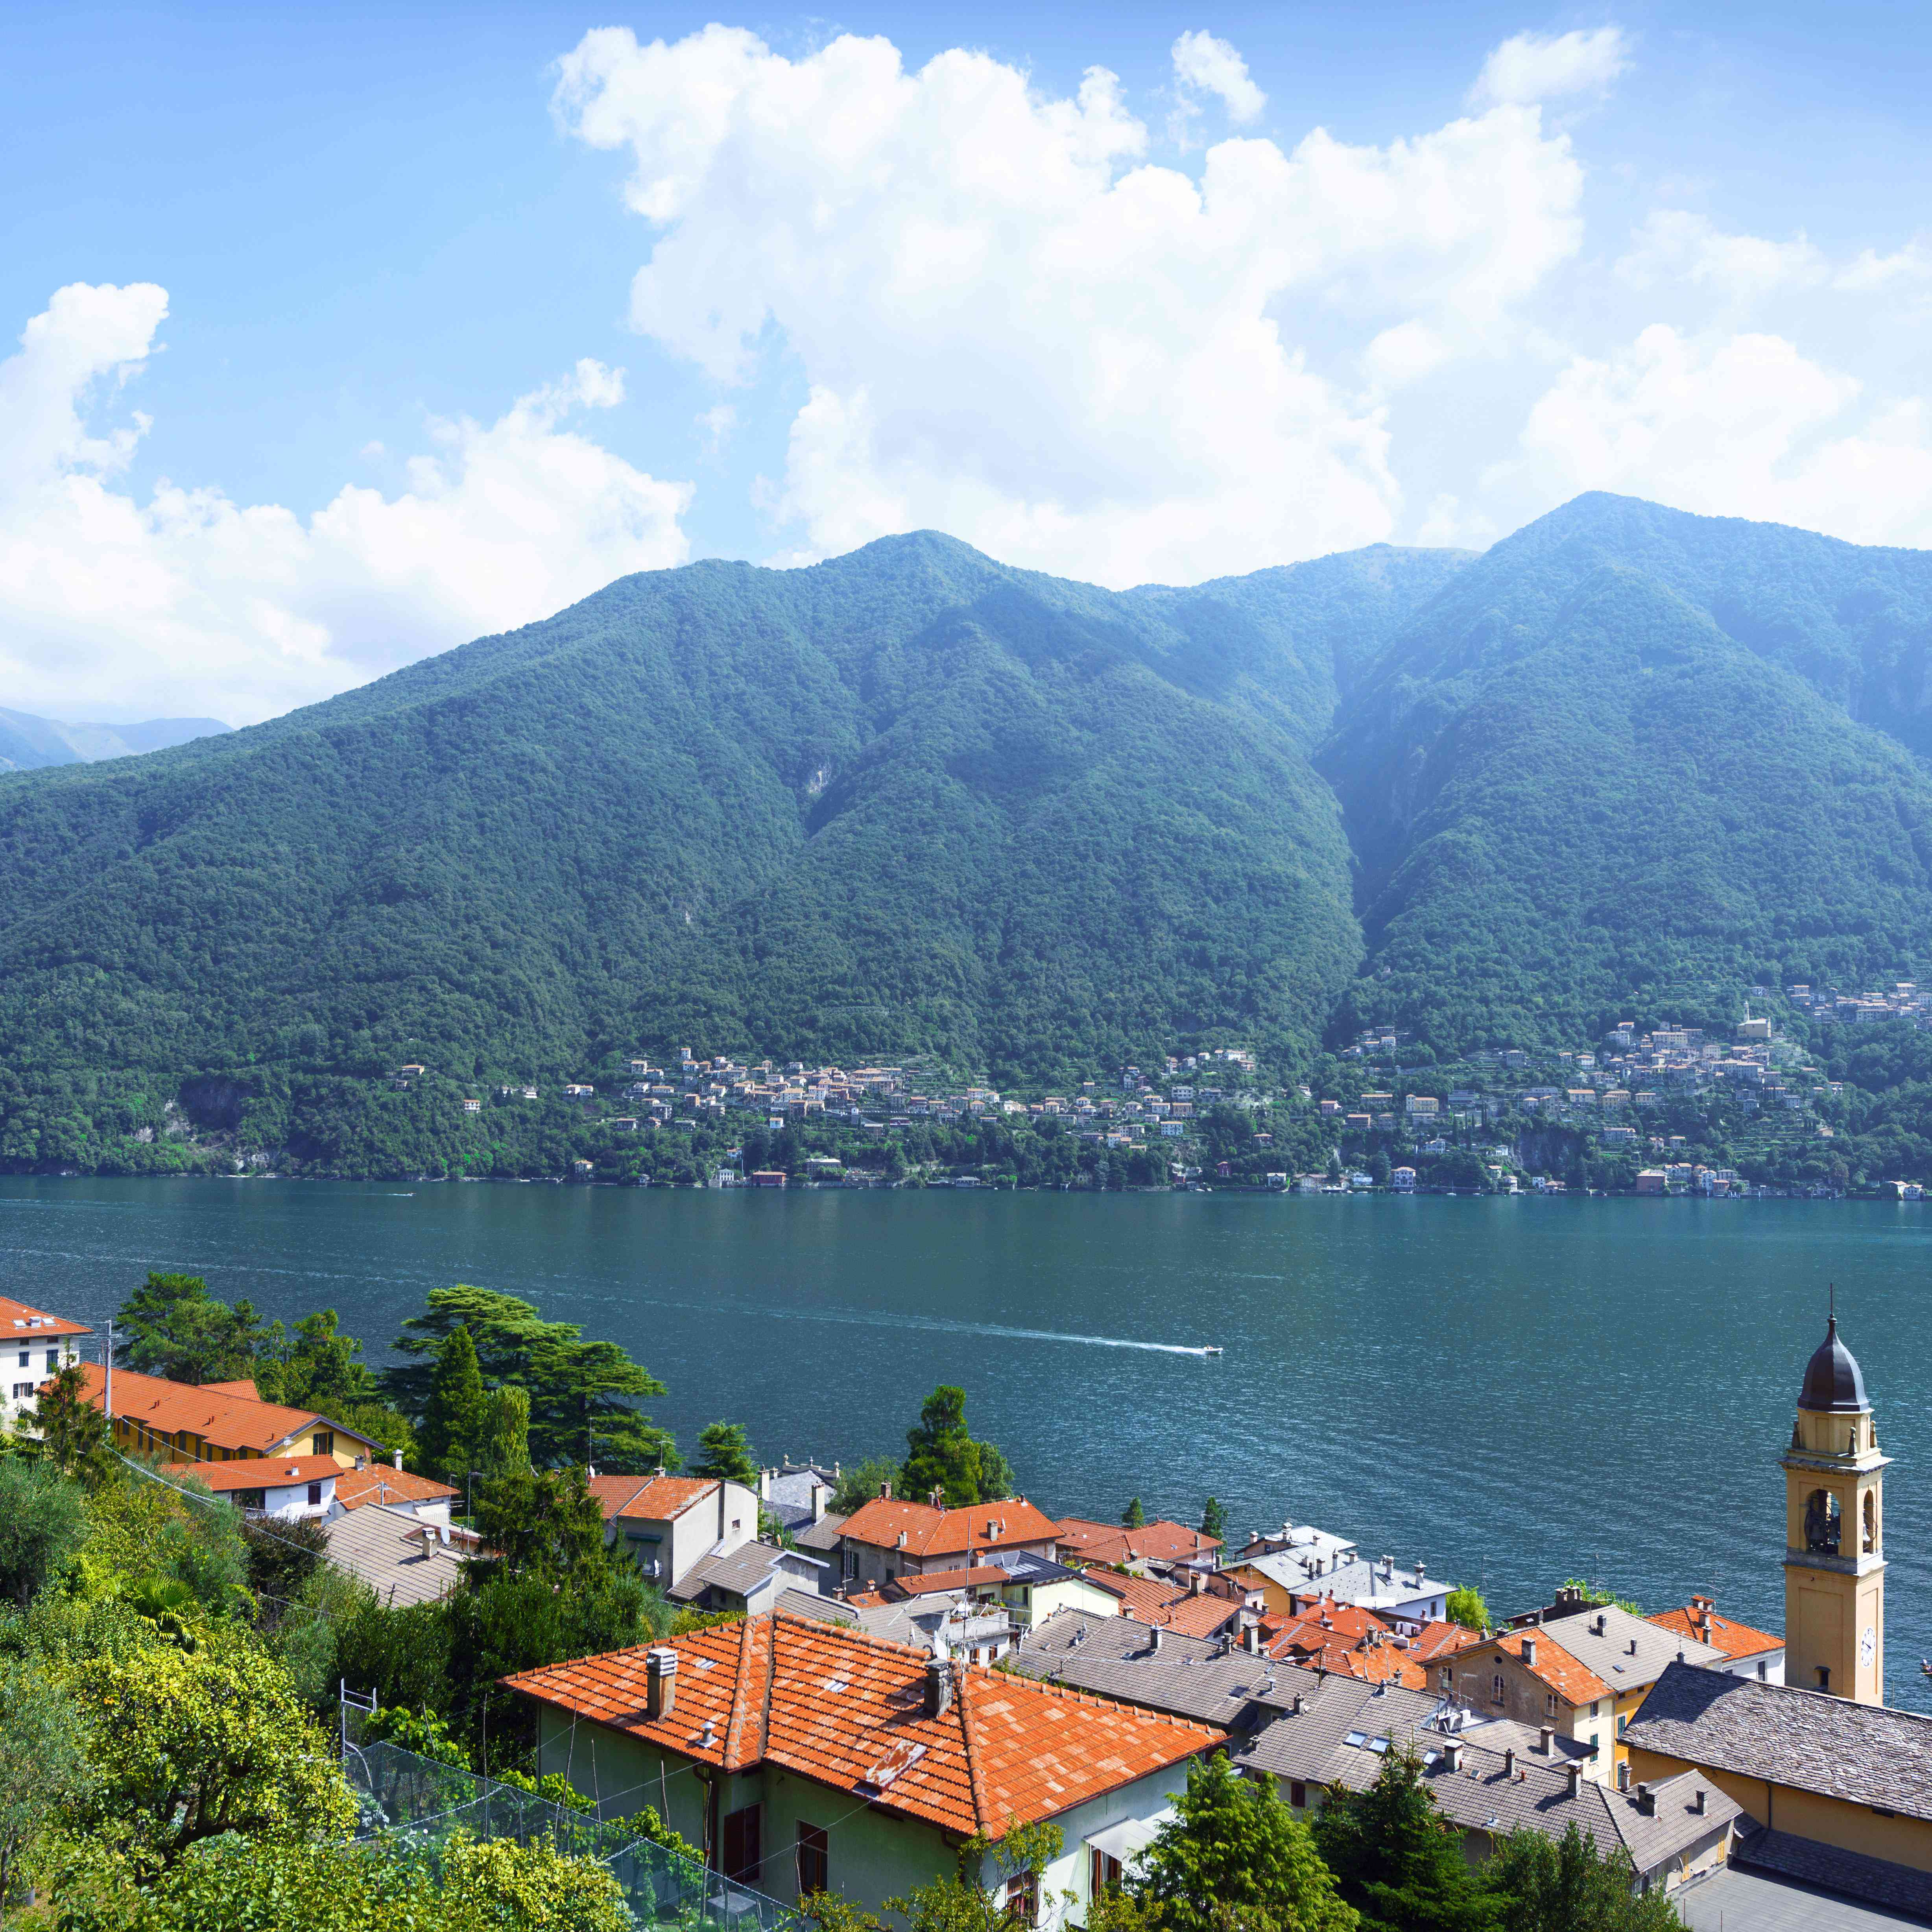 How To Plan A Picture-Perfect Honeymoon On Lake Como, Italy